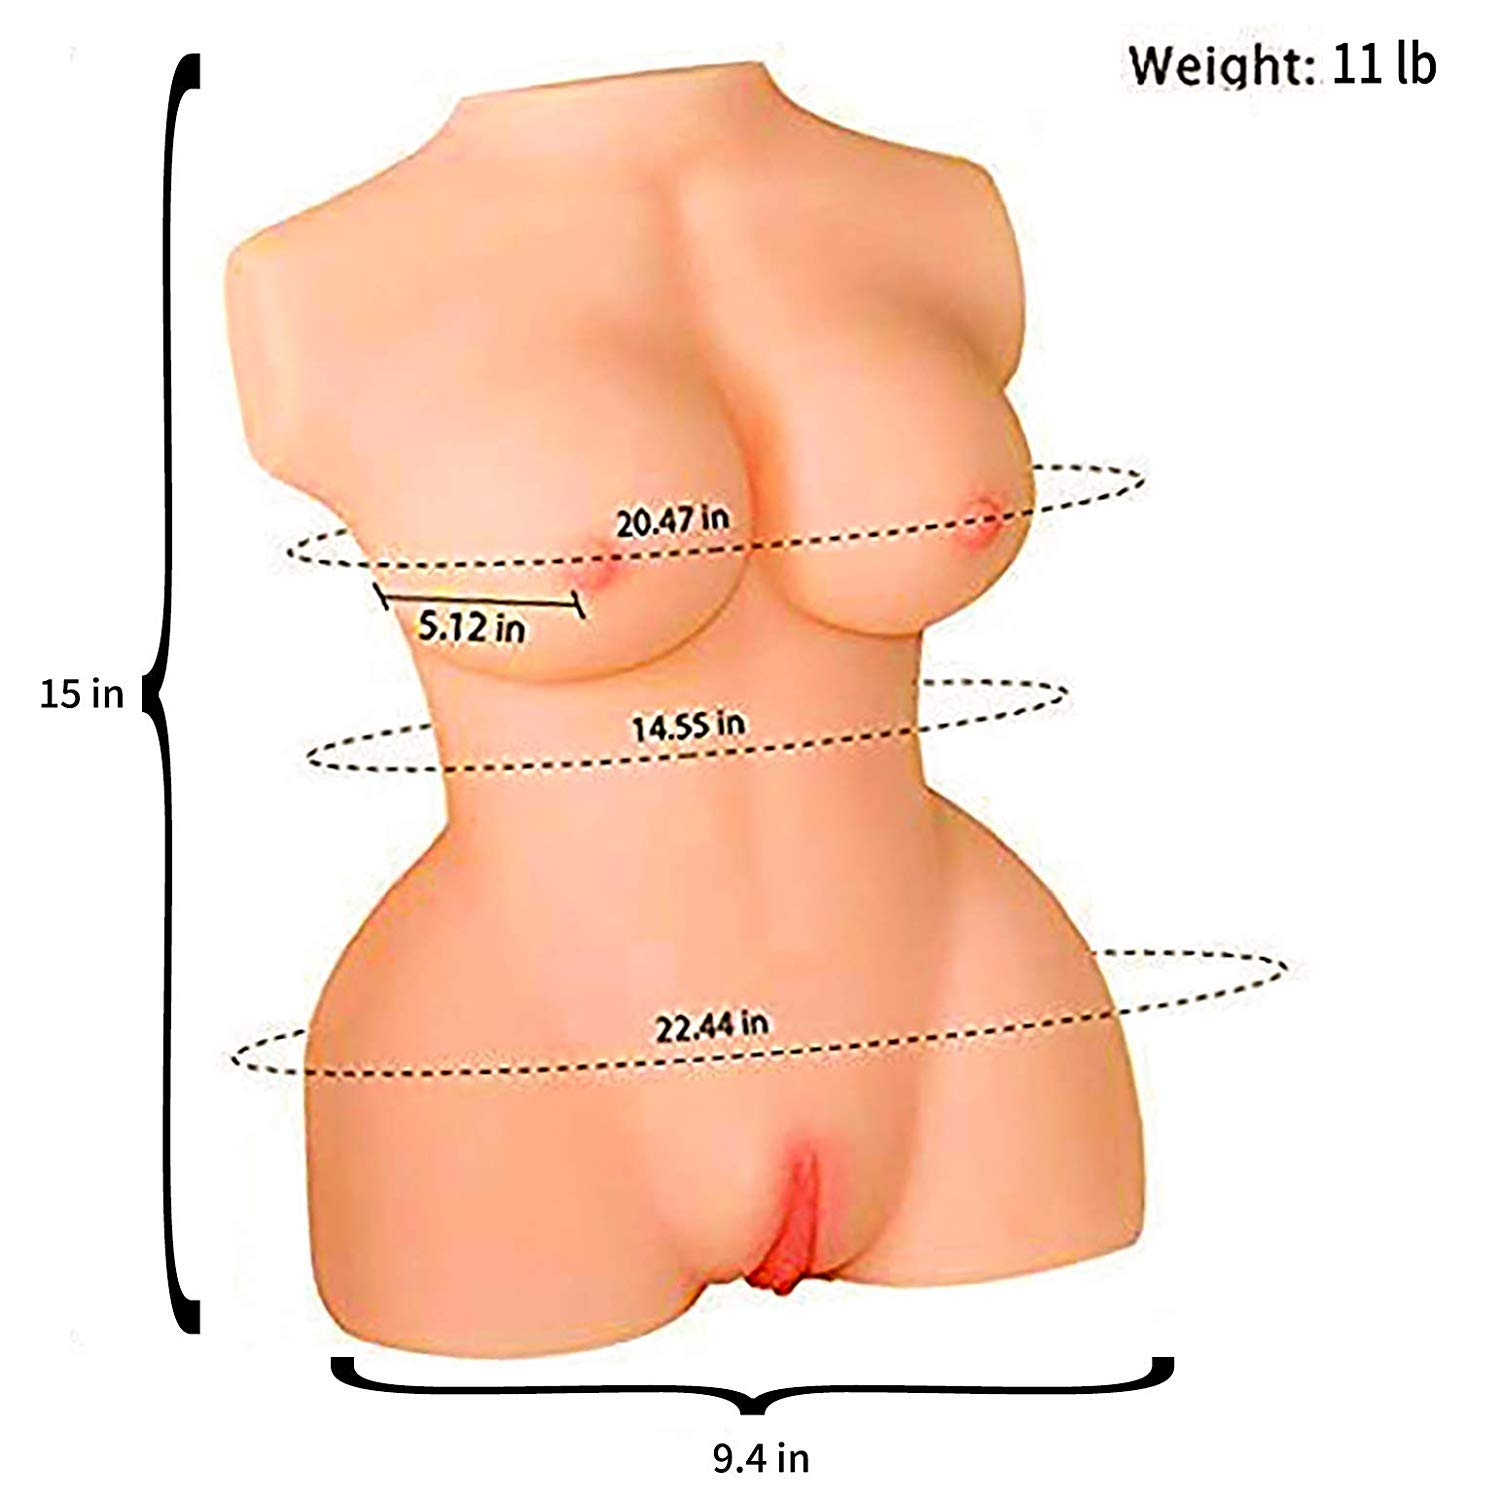 Movitip Sex Doll Male Masturbator Pocket Pussy Female Love Doll Torso with Tight Vagina Anal, 3D Lifelike Real Love Doll Torso with Metal Skeleton, Soft Ass Adult Sex Toy (15x9.4x5.1 Inches.11 lb) by Movitip